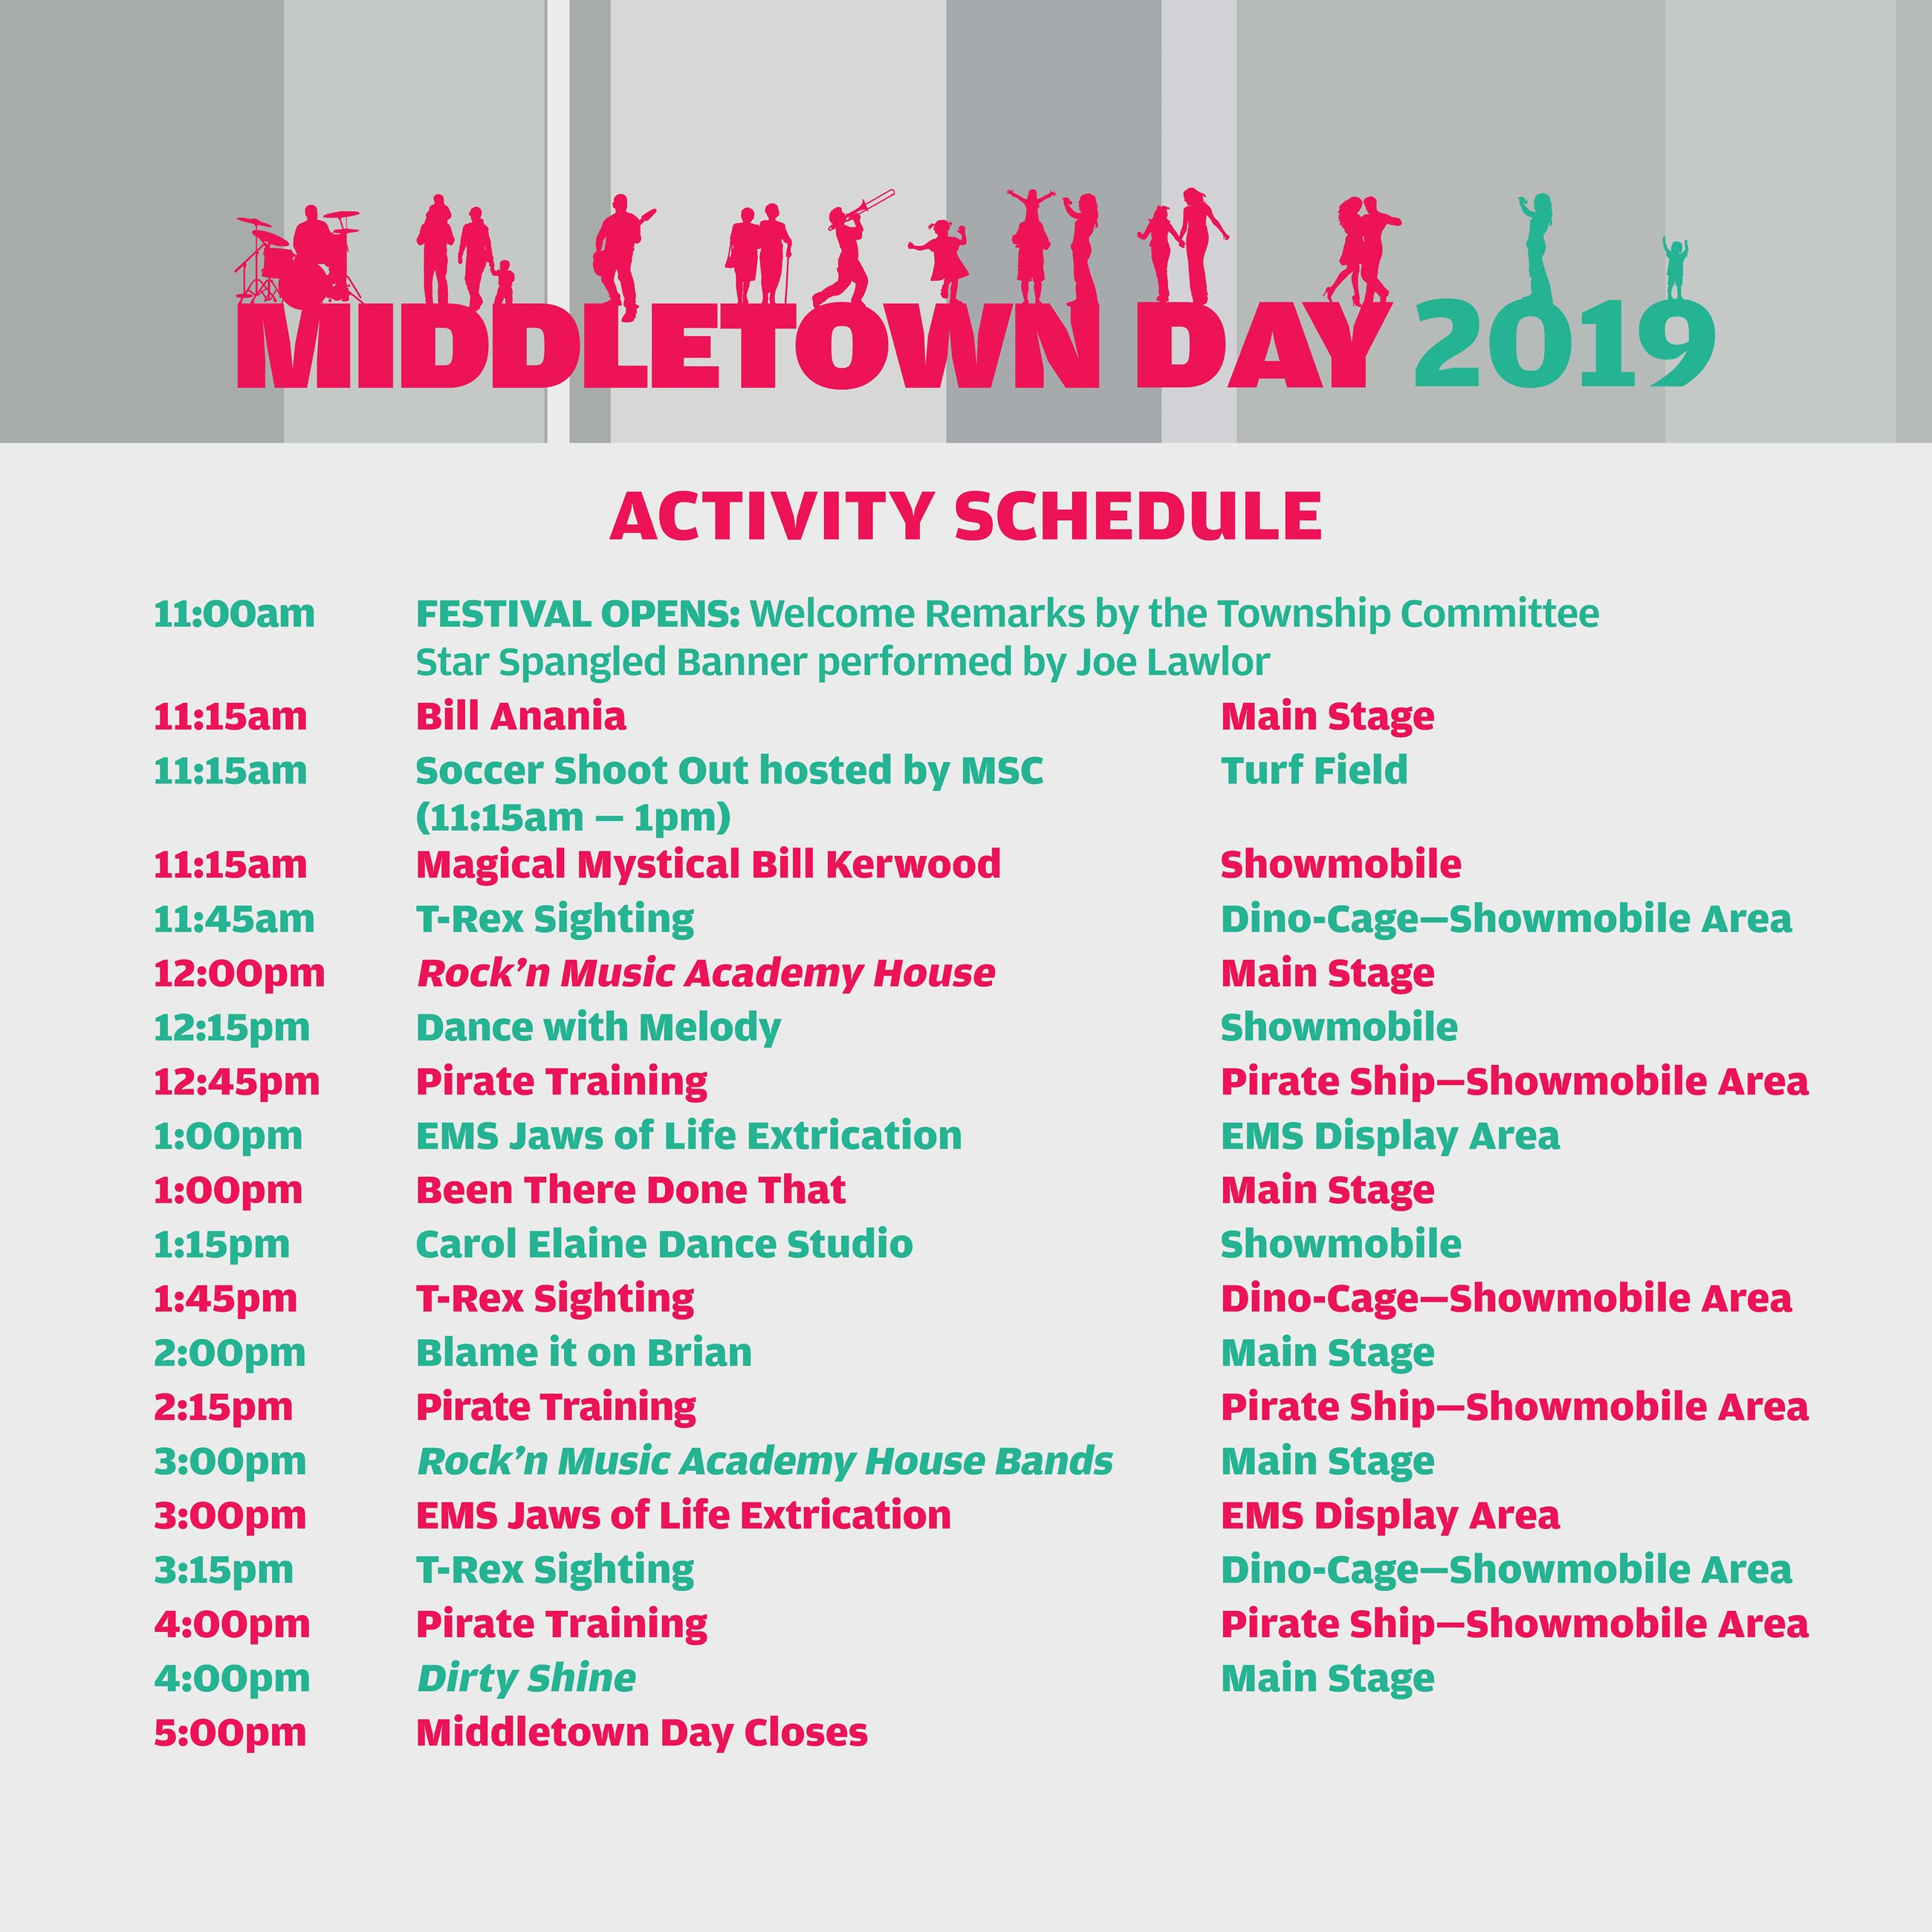 Middletown Day 2019 Activity Schedule